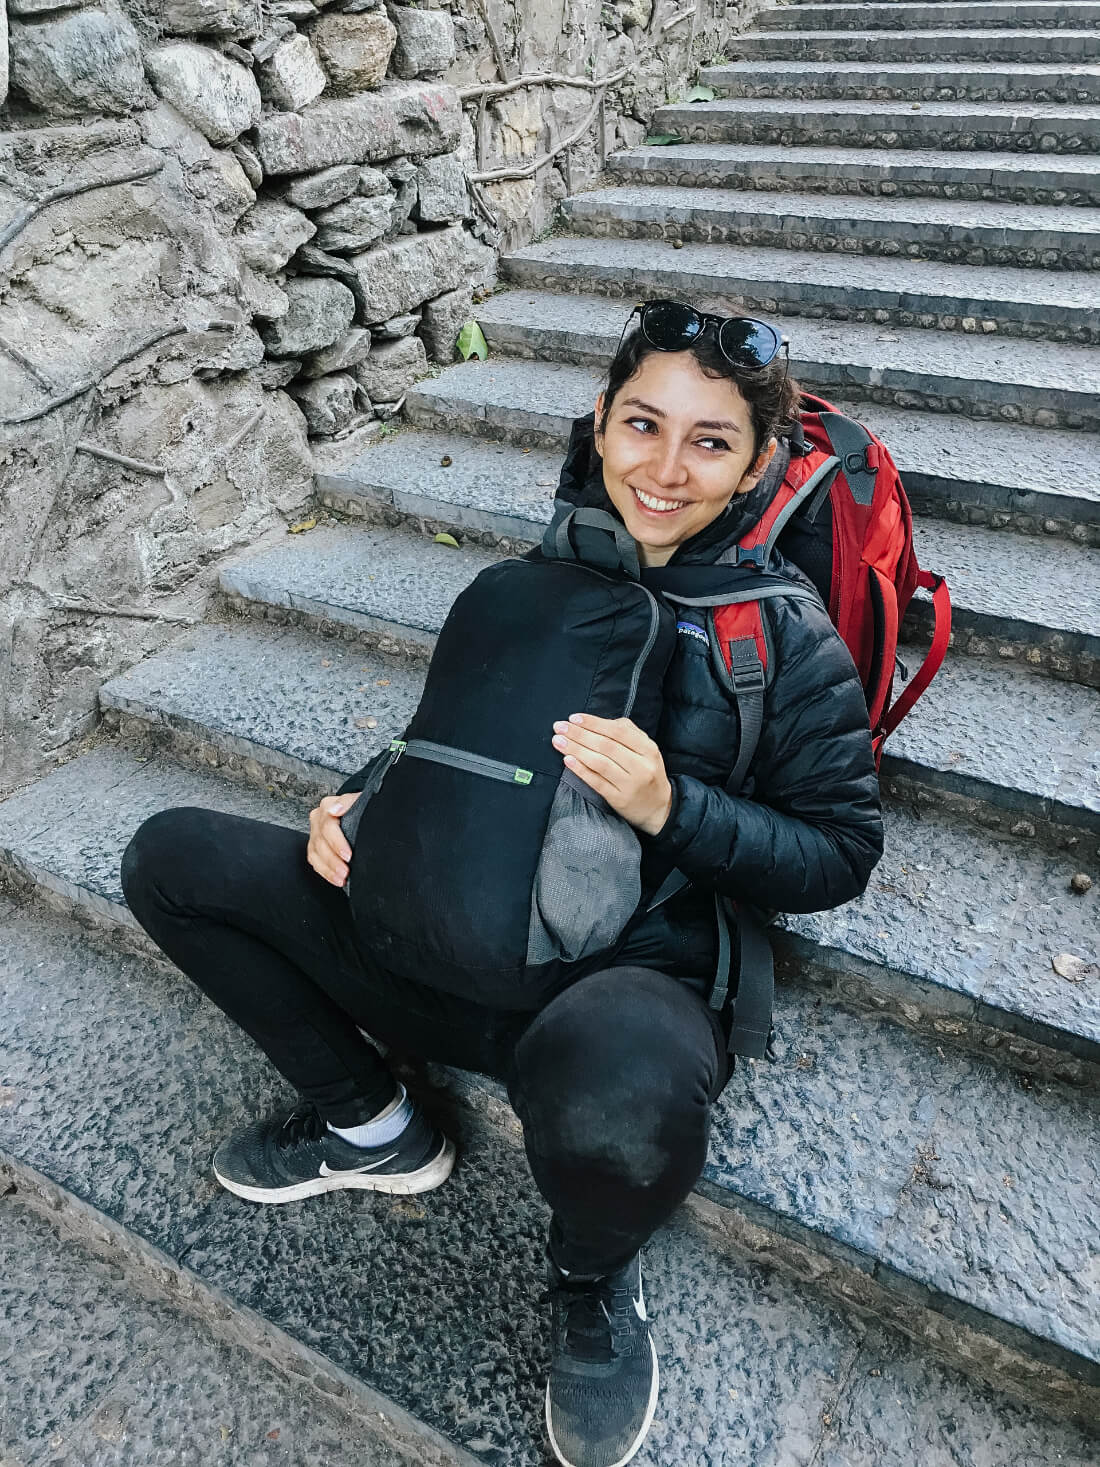 Stacey Valle with a large backpack and another smaller backpack on her front, sitting on a staircase looking exhausted but smiling